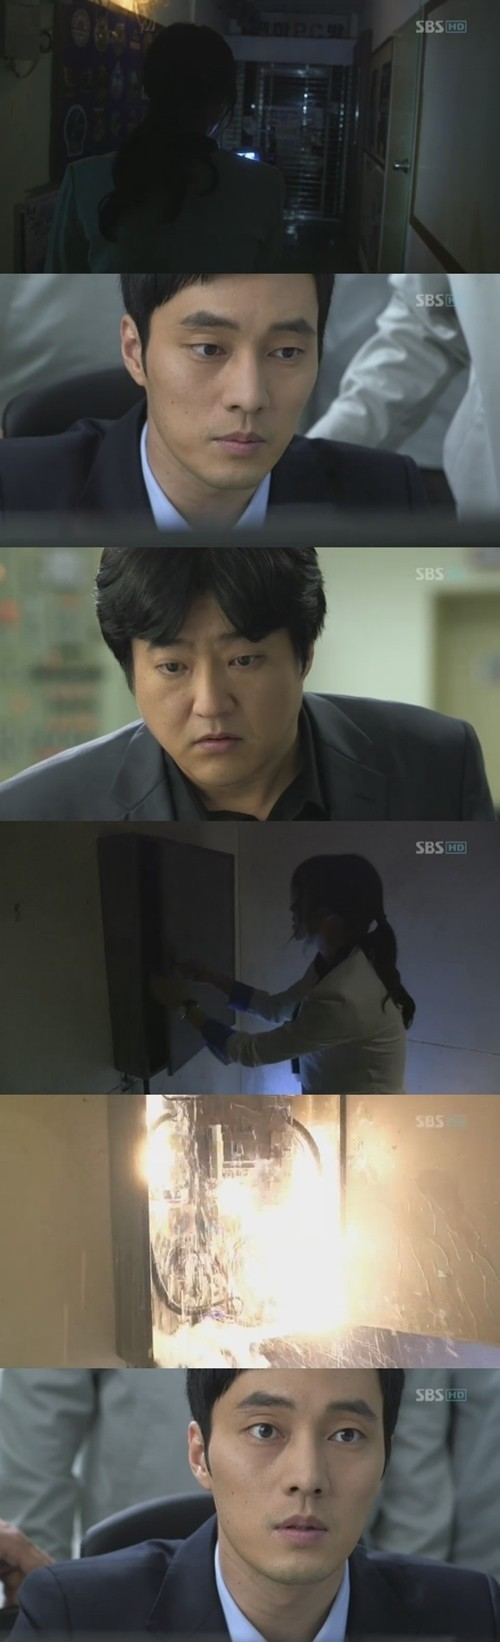 'Ghost' Lee Yeon Hee Saves The Day Against Hacker!key=>0 count2